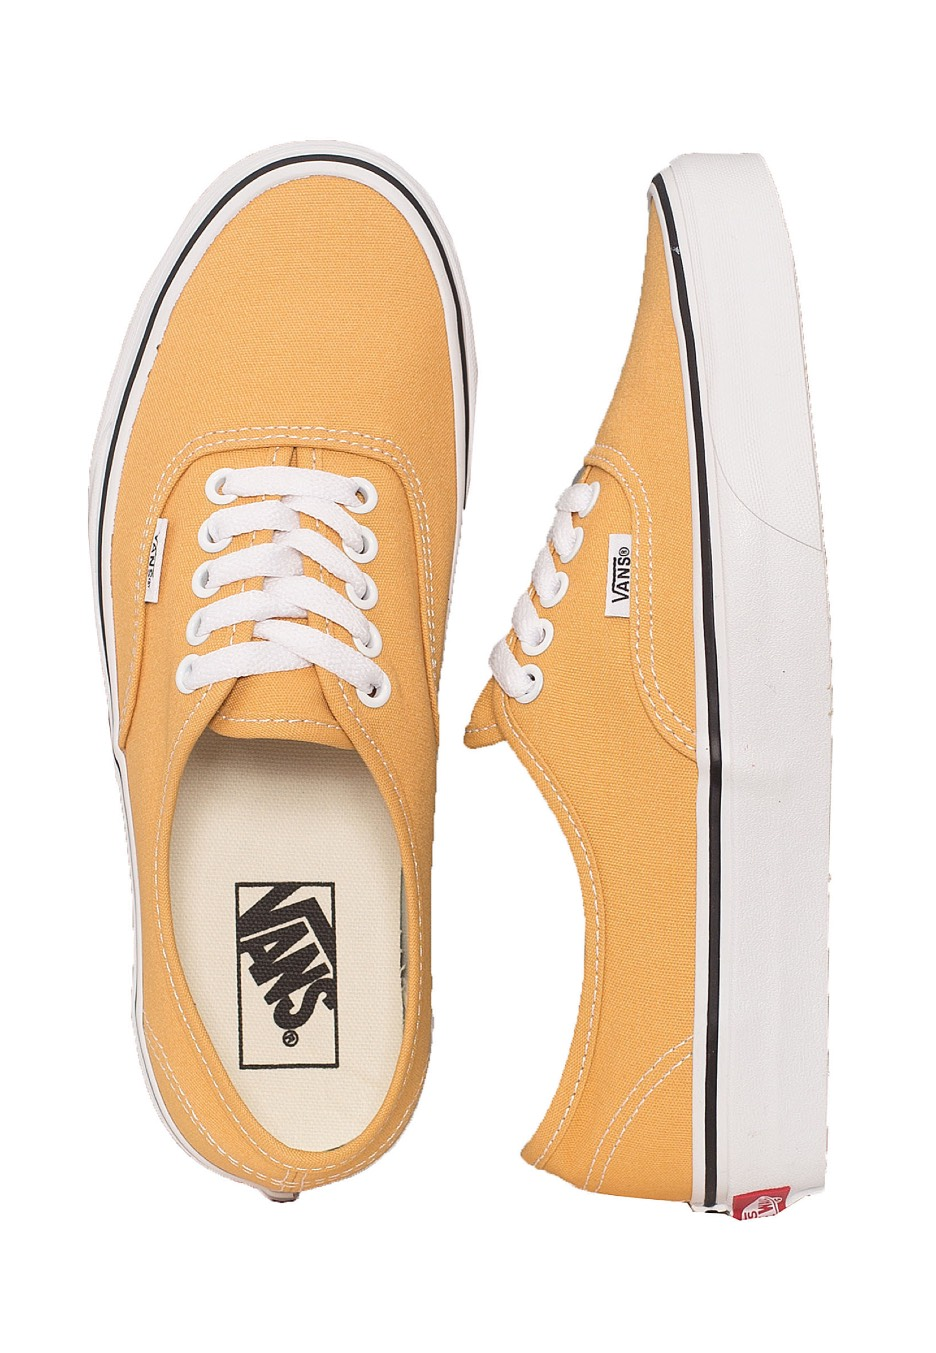 0a0c42dba46a Vans - Authentic Ochre True White - Girl Shoes - Impericon.com AU